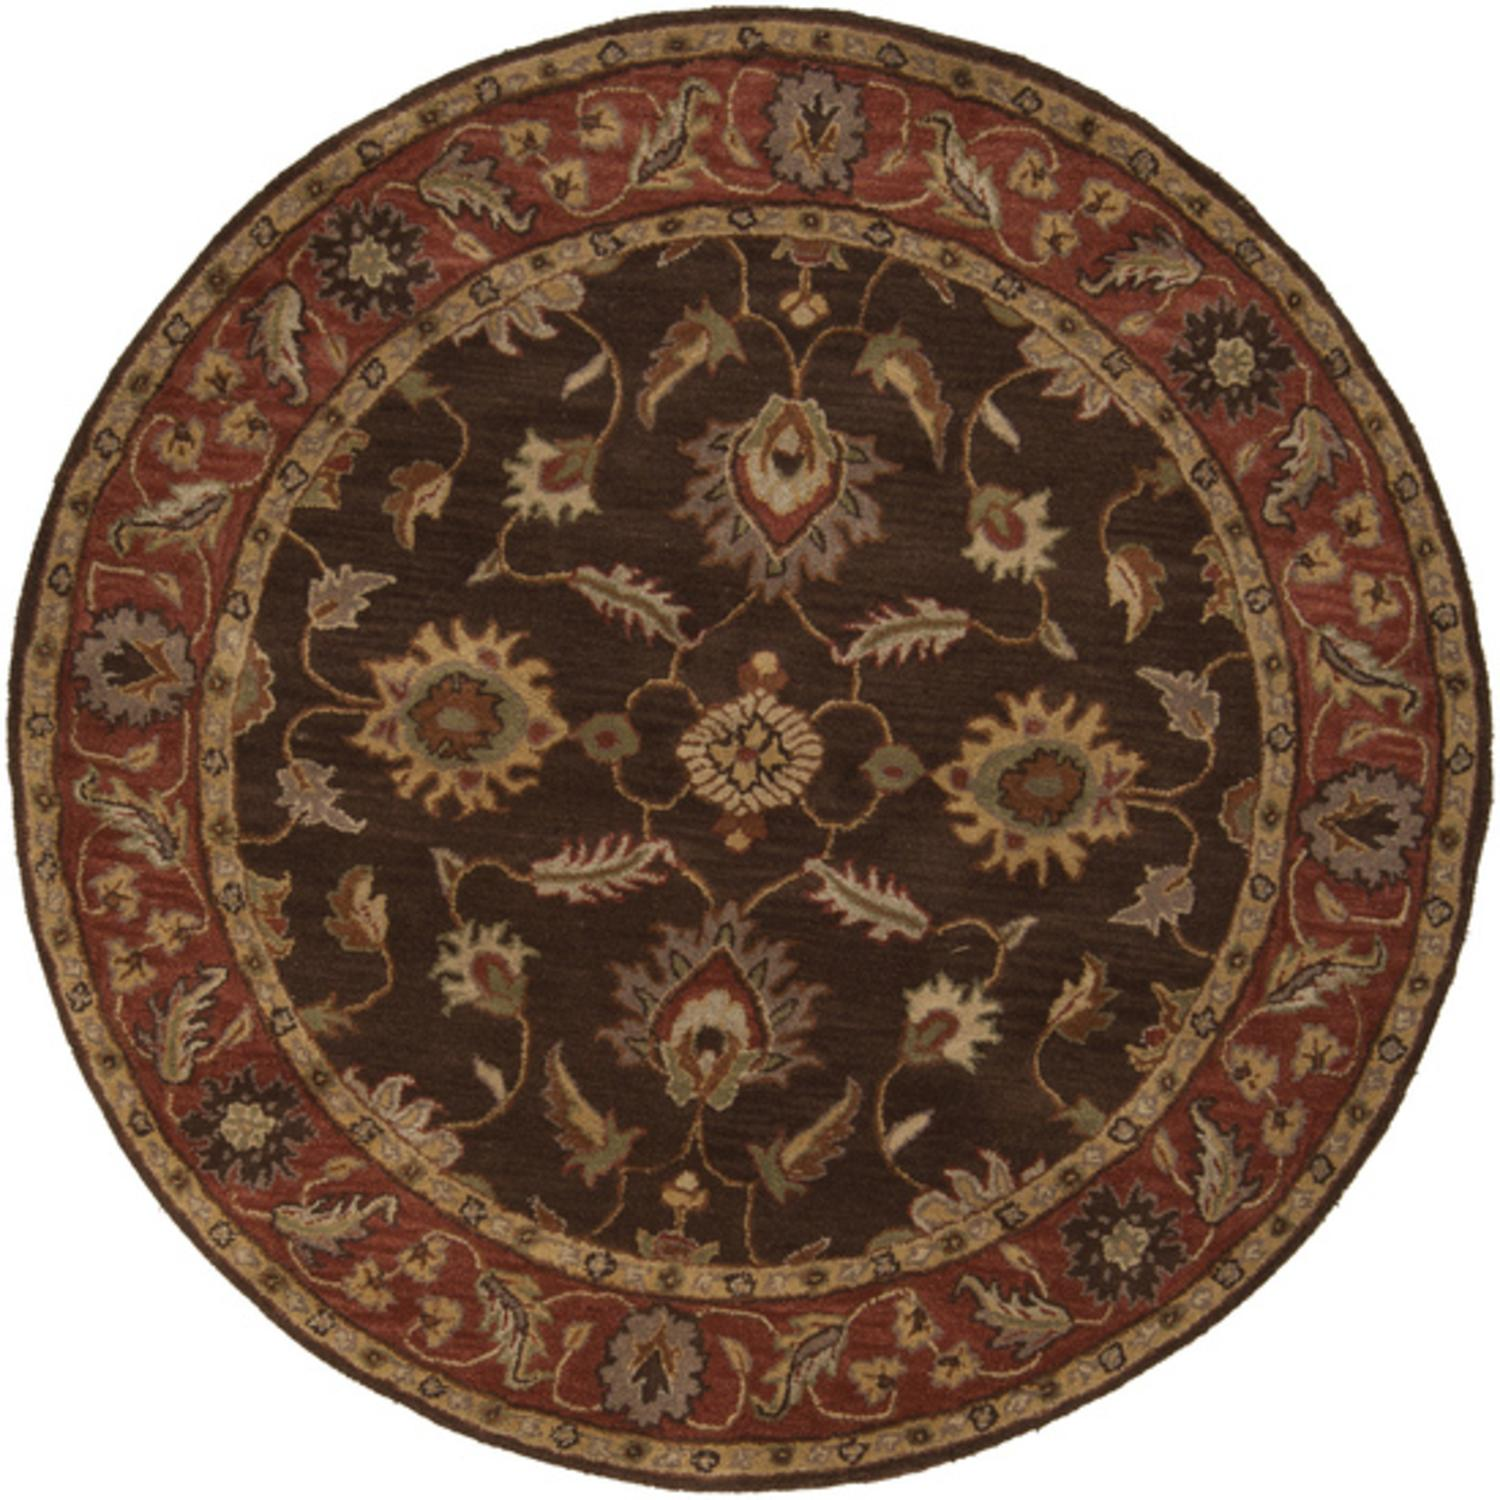 4'  Anethancian Driftwood Brown and Red Clay Round Wool Area Throw Rug